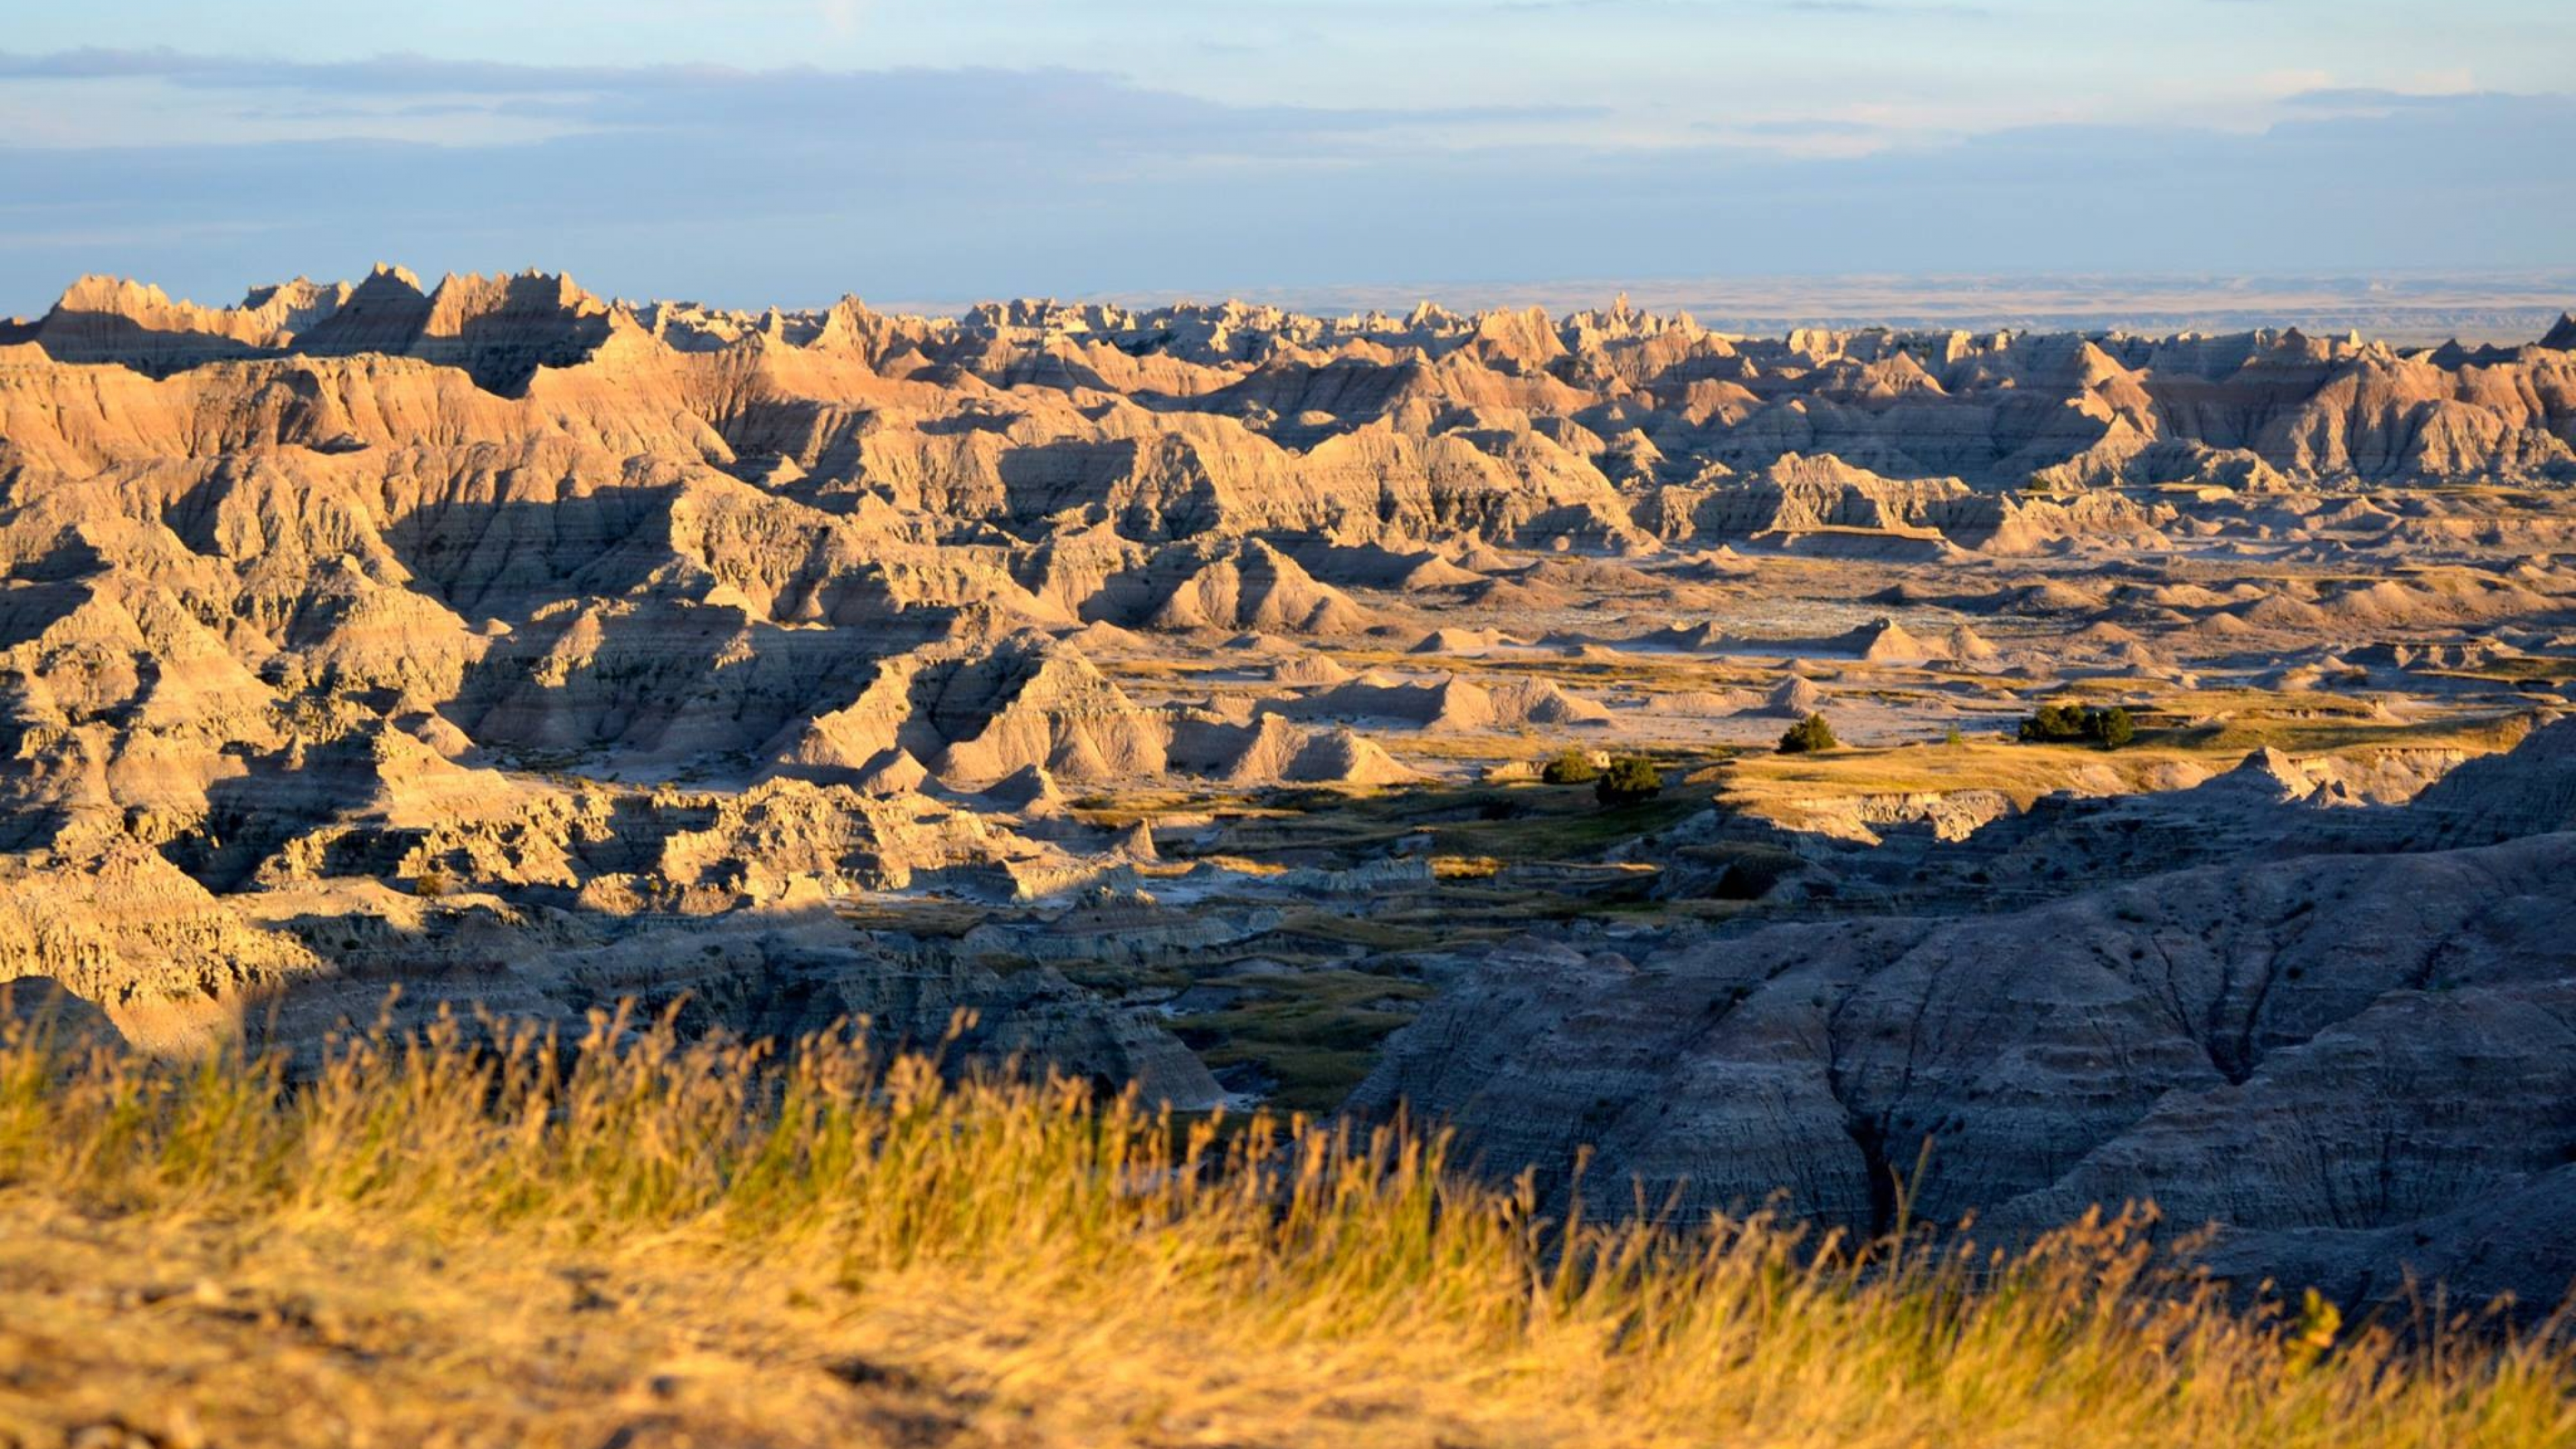 Golden sunlight hitting the sandstone cliffs and hills of Badlands National Park